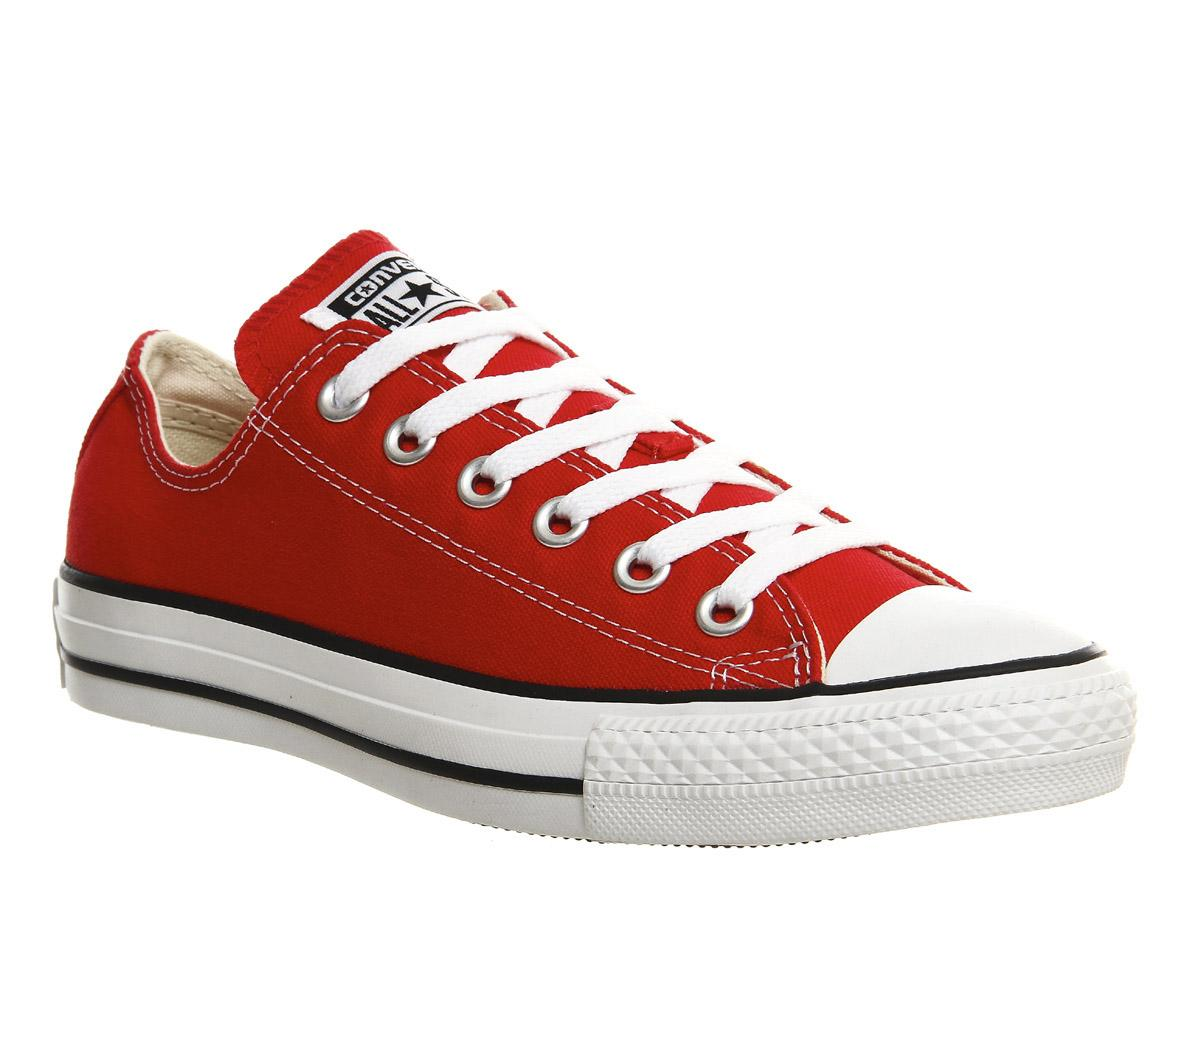 96b0a4ff01de Converse All Star Low Red Canvas - Unisex Sports